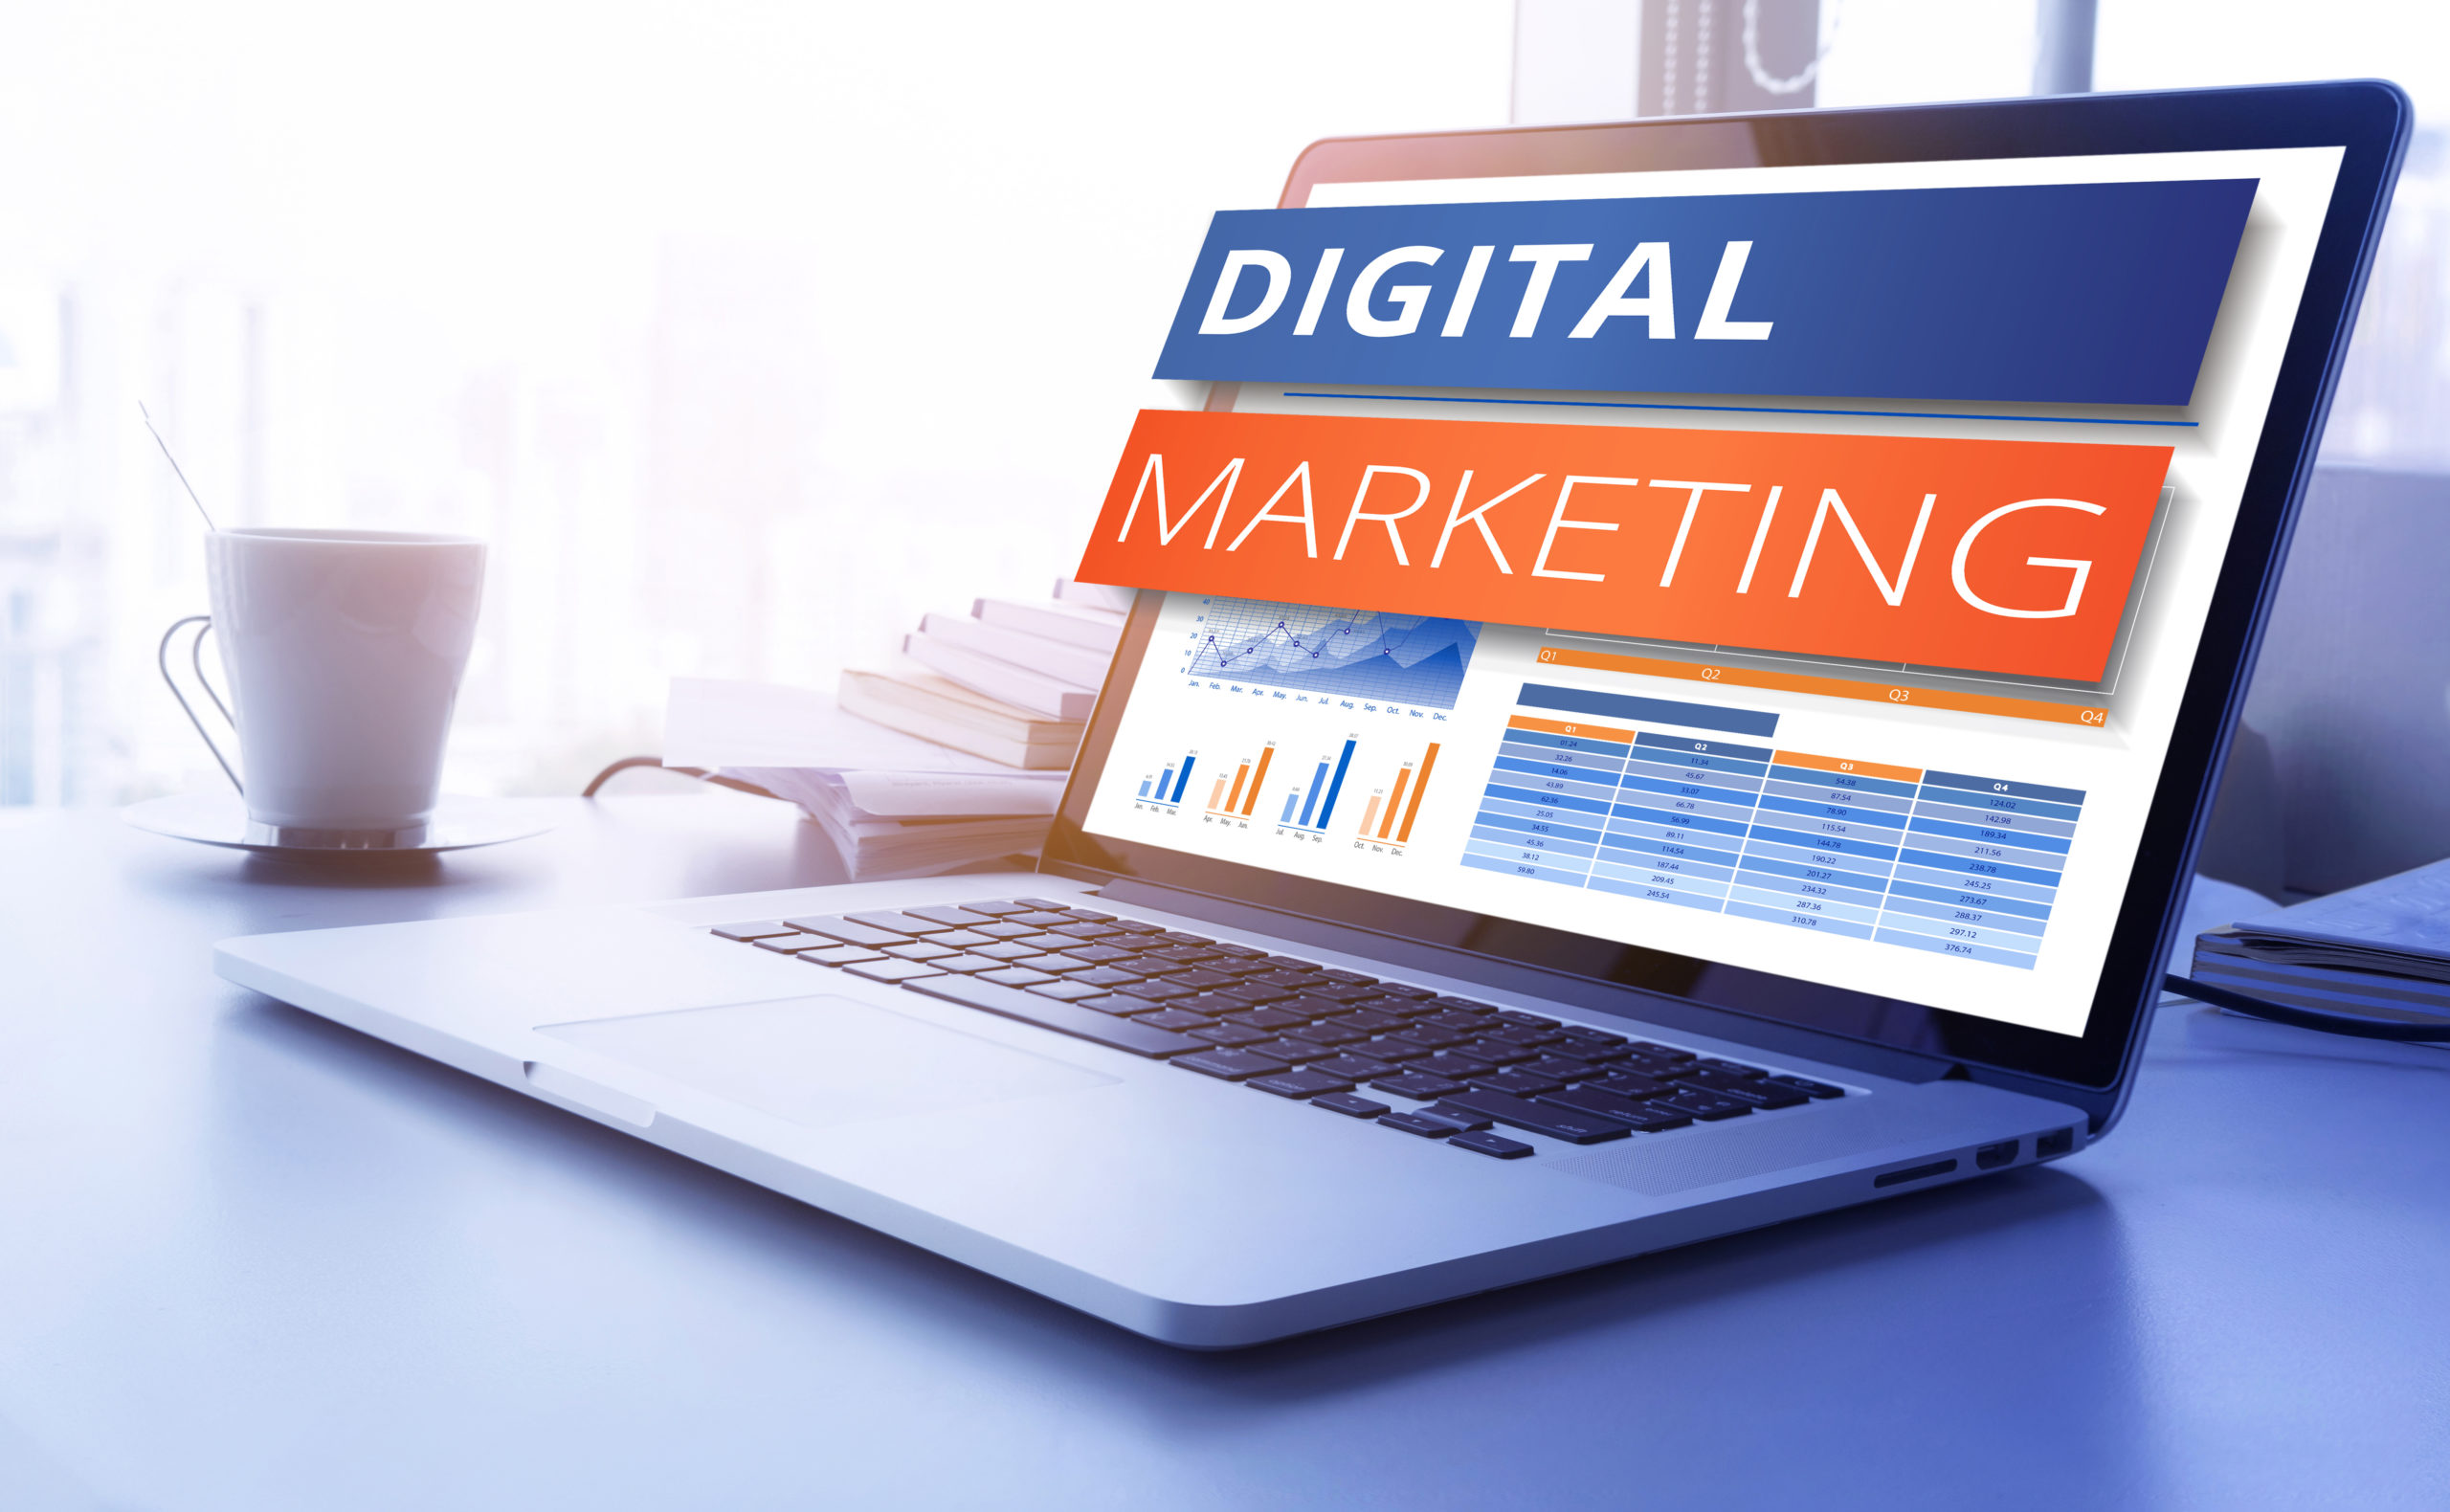 Digital Marketing Events